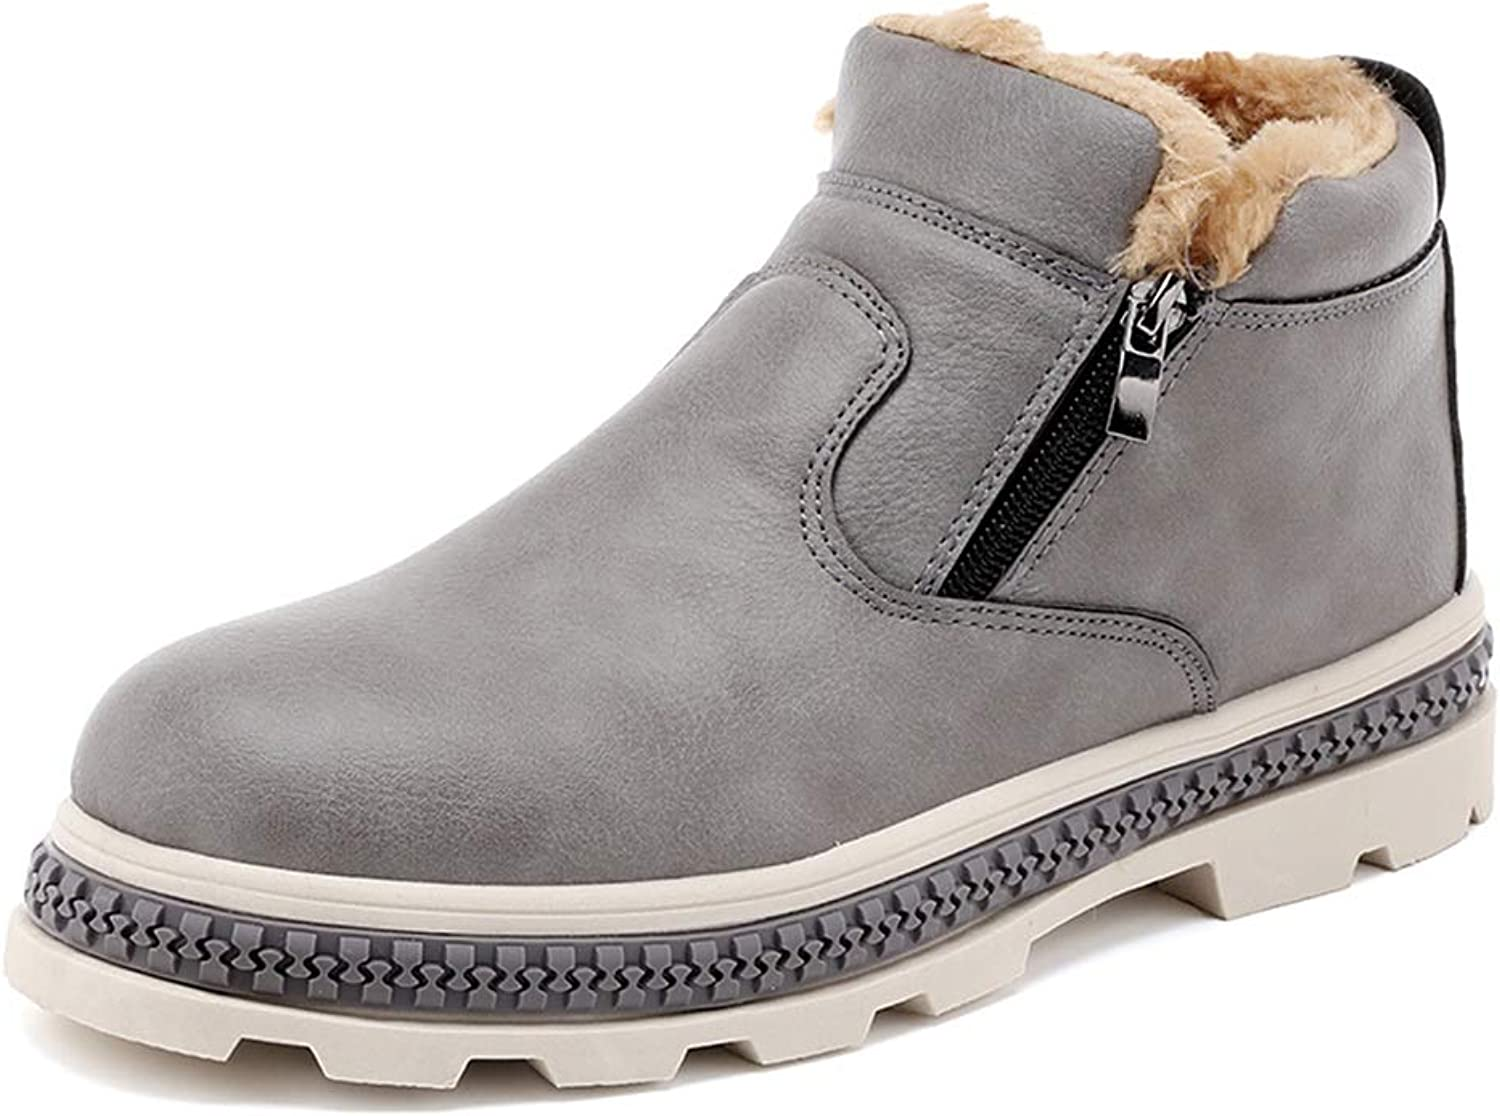 SRY-Fashion shoes Men's Stylish Snow Boots Casual Warm Boots Commodious Zipper Winter Faux Fleece Inside Home shoes